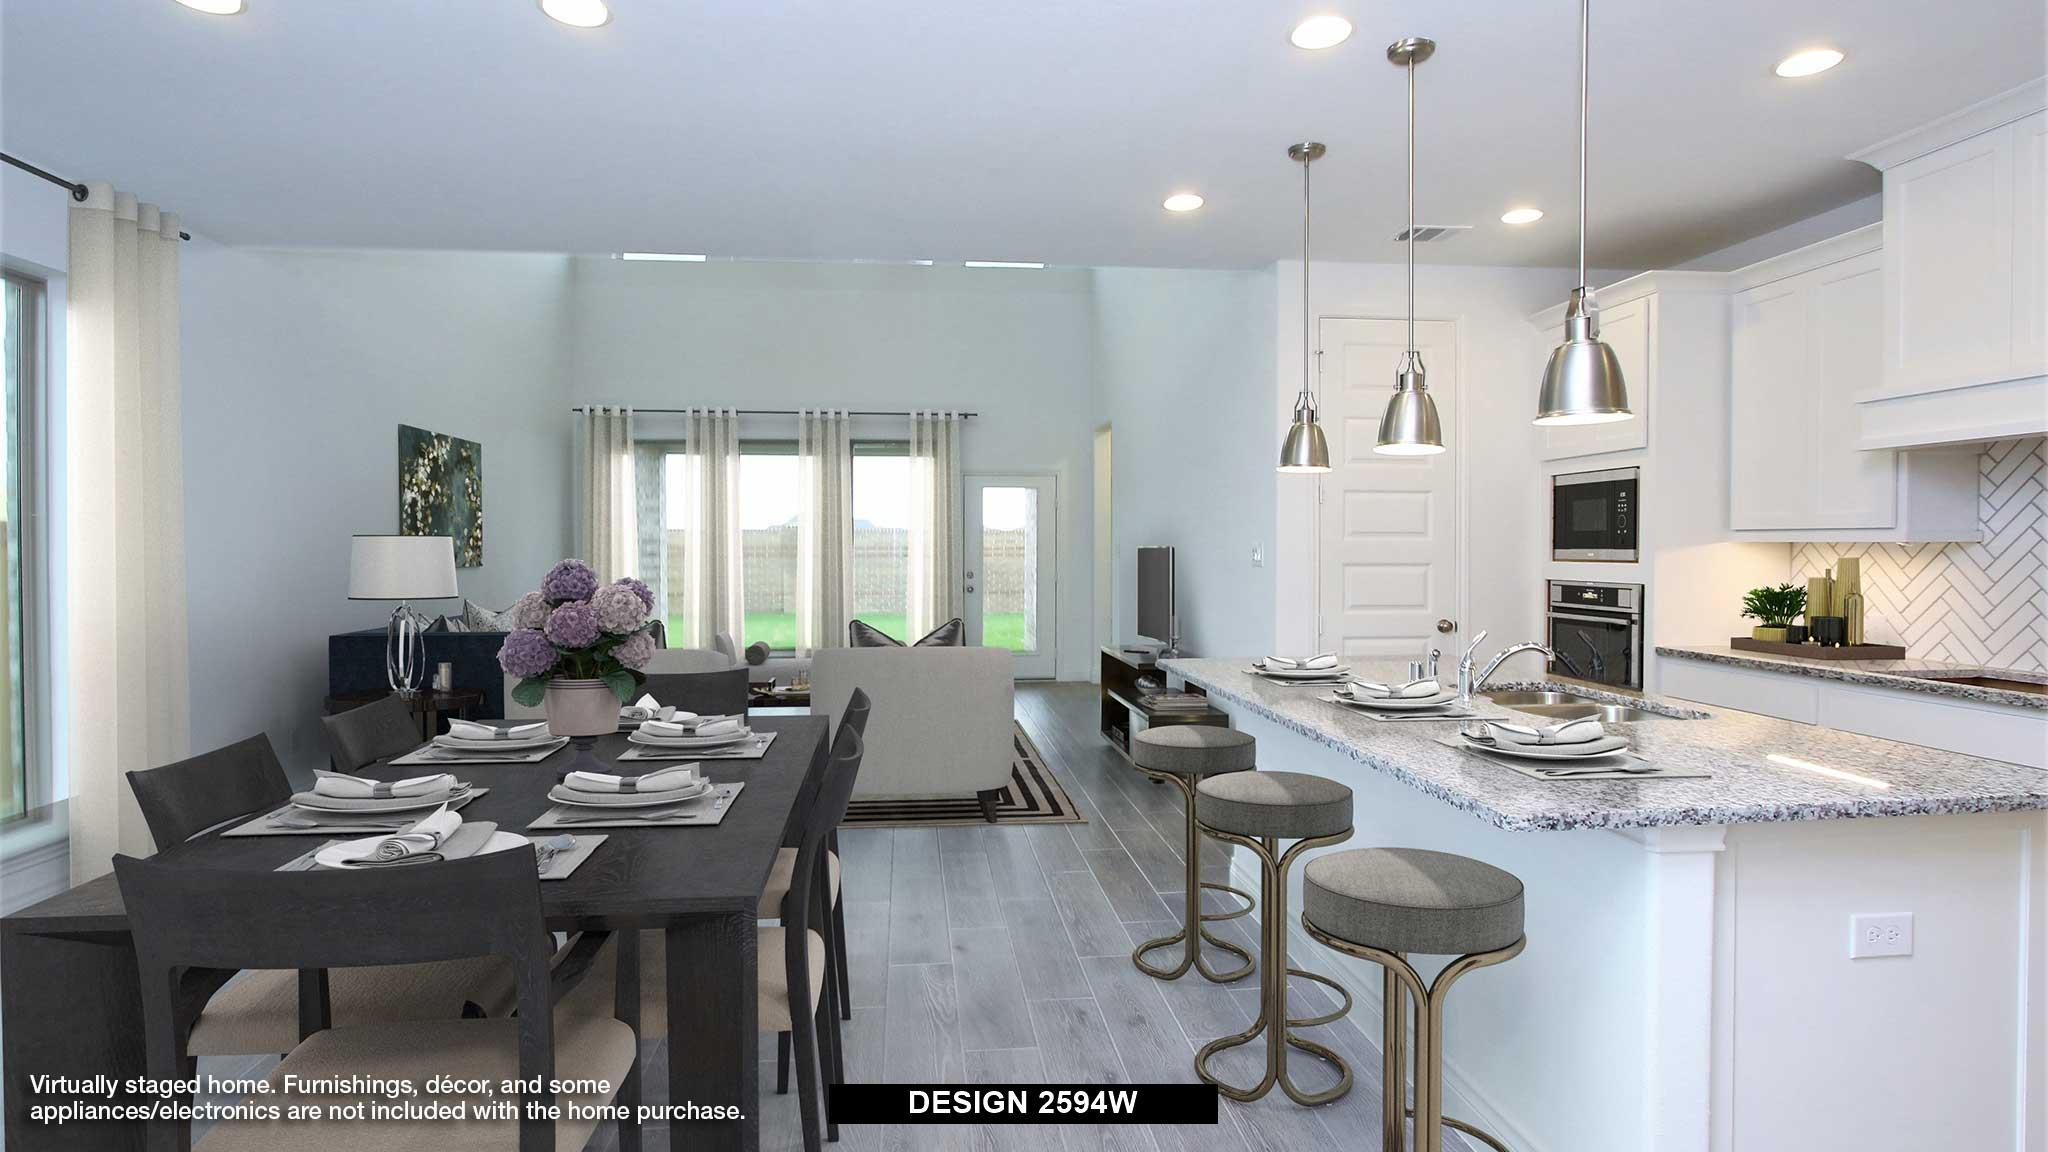 Kitchen featured in the 2594W By Perry Homes in Dallas, TX